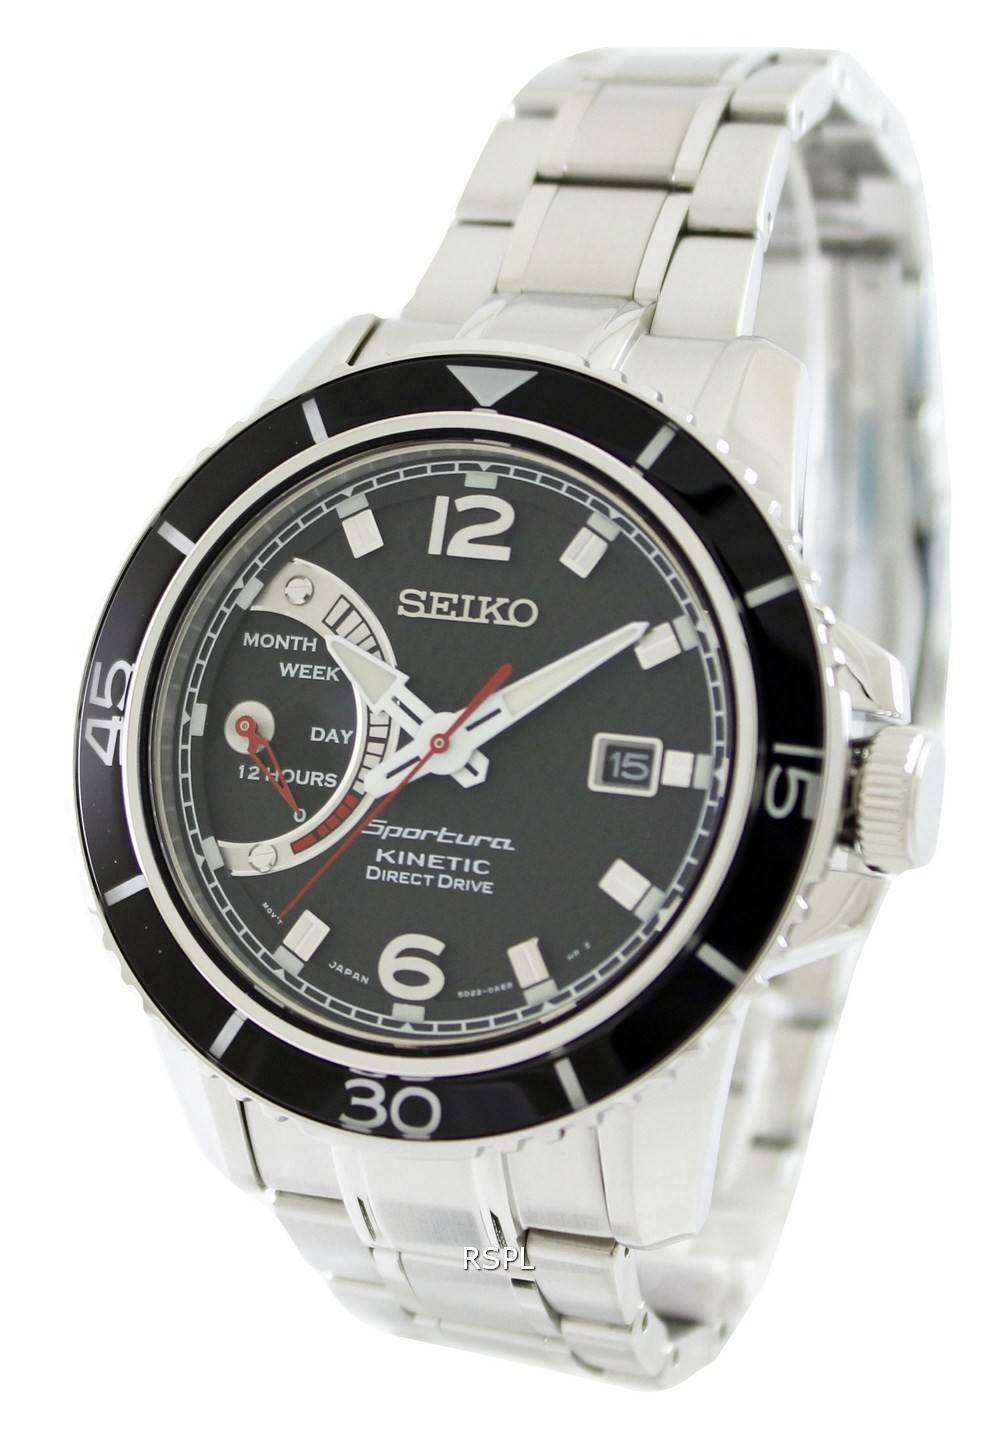 Seiko sportura kinetic direct drive srg019p1 srg019p srg019 mens watch zetawatches for Watches direct